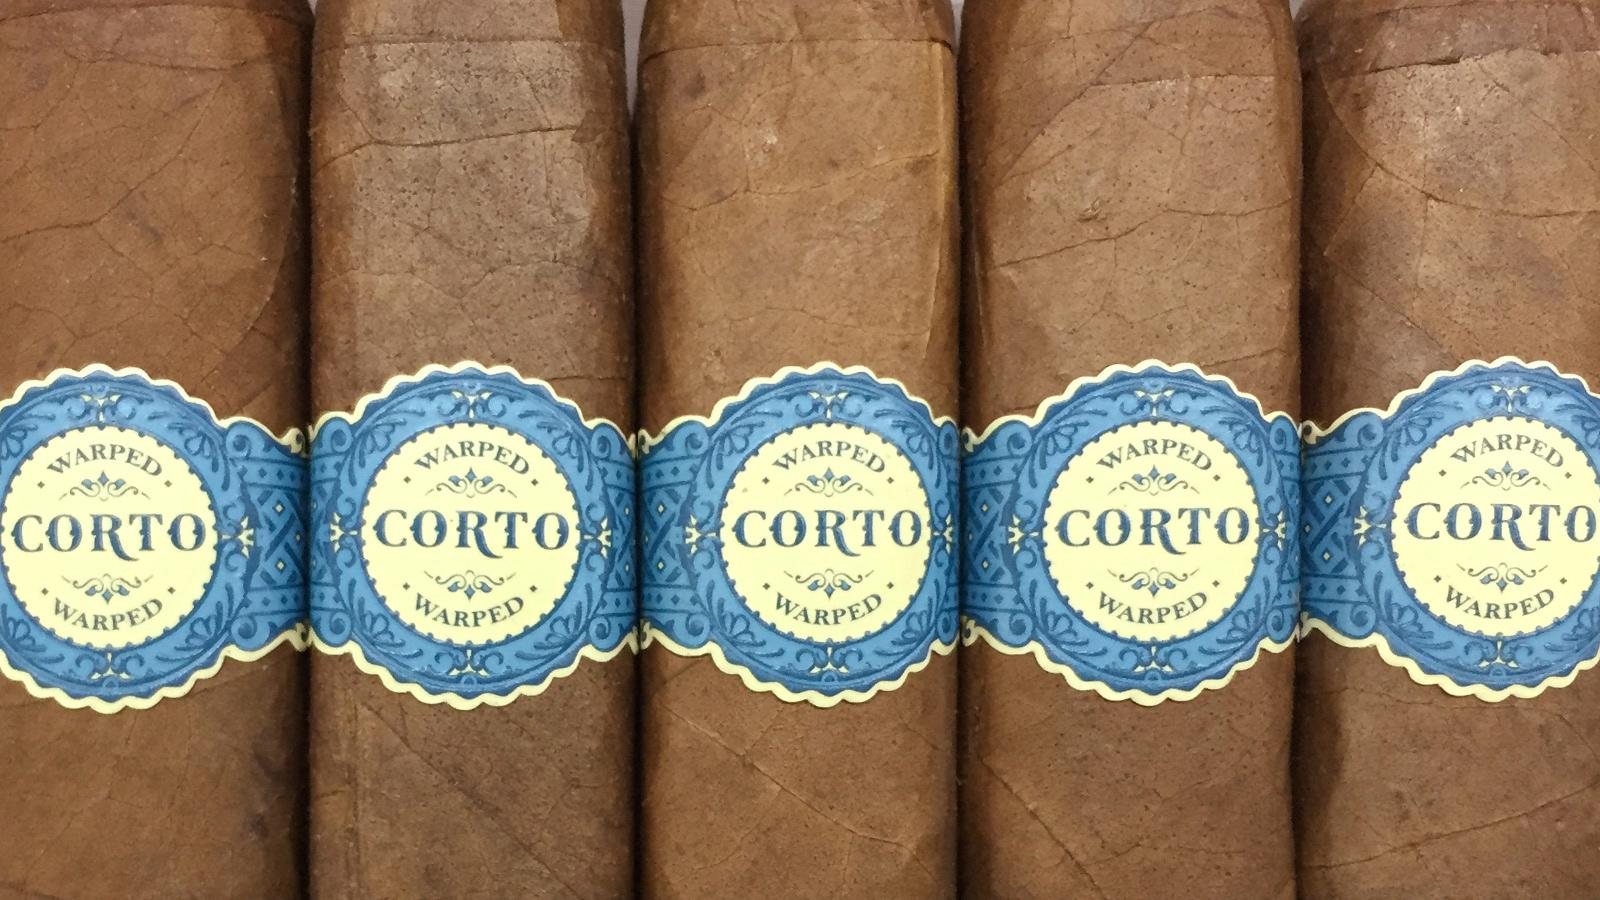 Warped Cigars Launching Corto In Coming Weeks